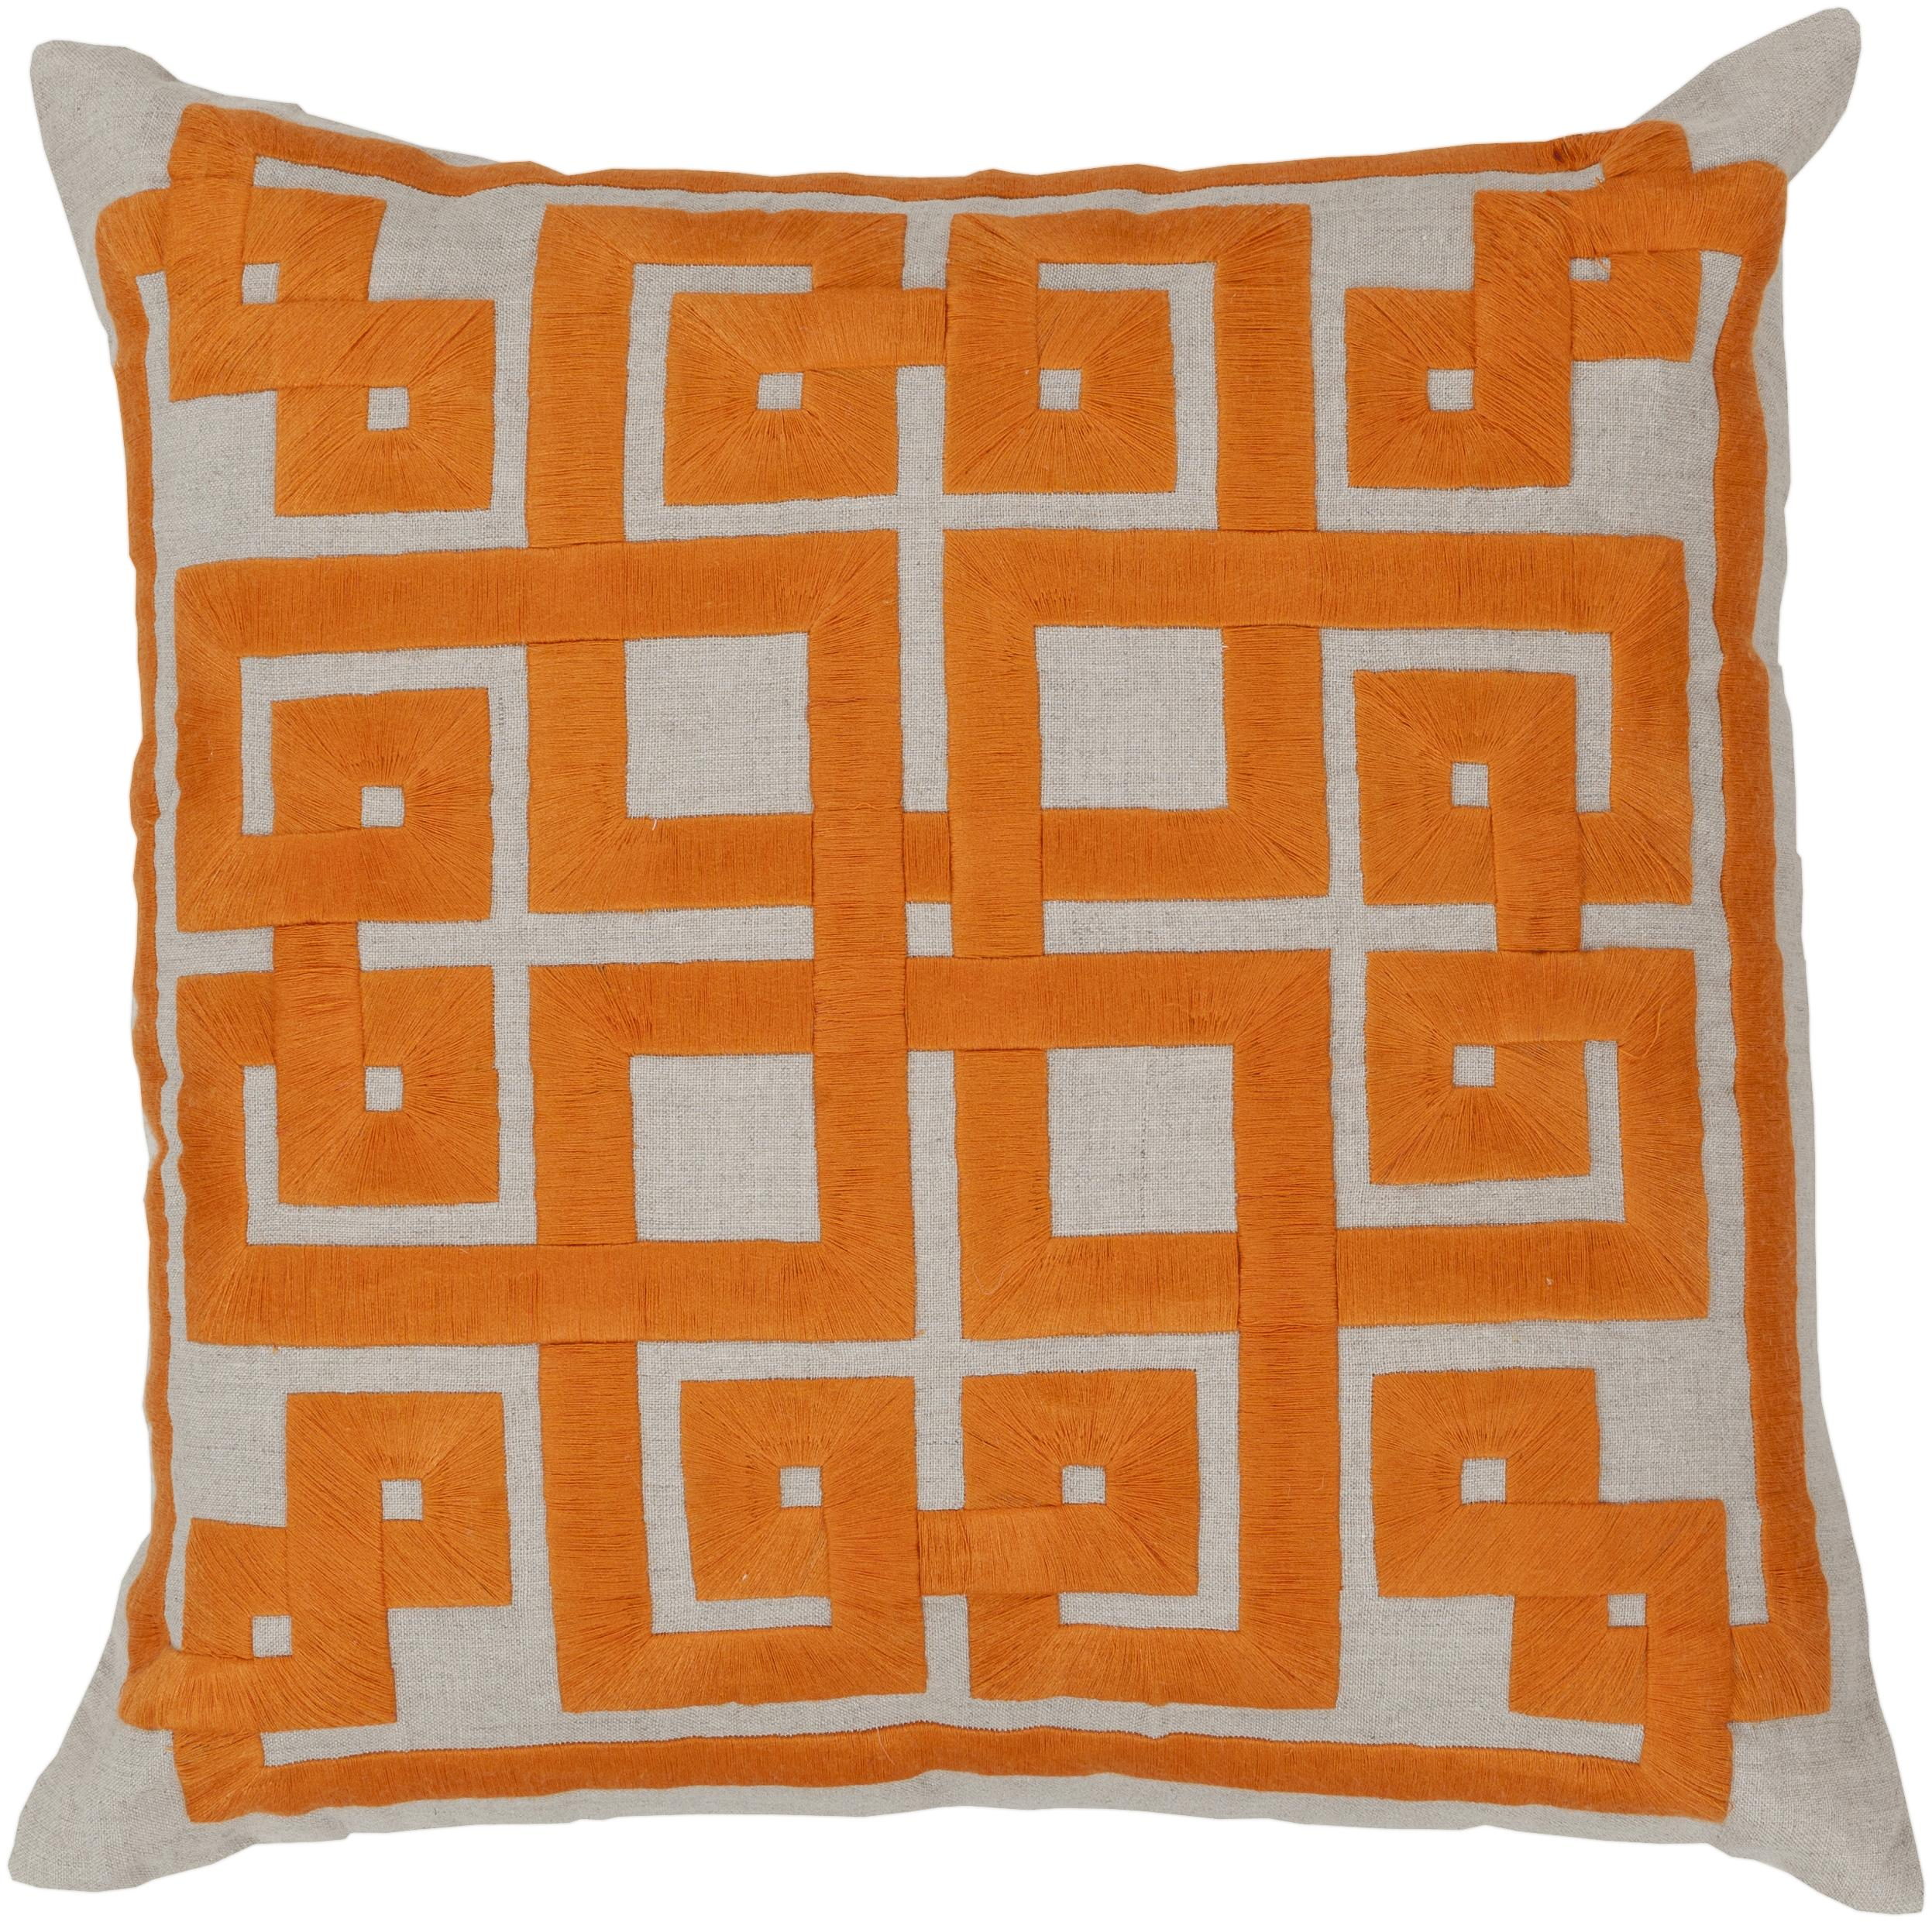 "Surya Pillows 18"" x 18"" Pillow - Item Number: LD003-1818P"